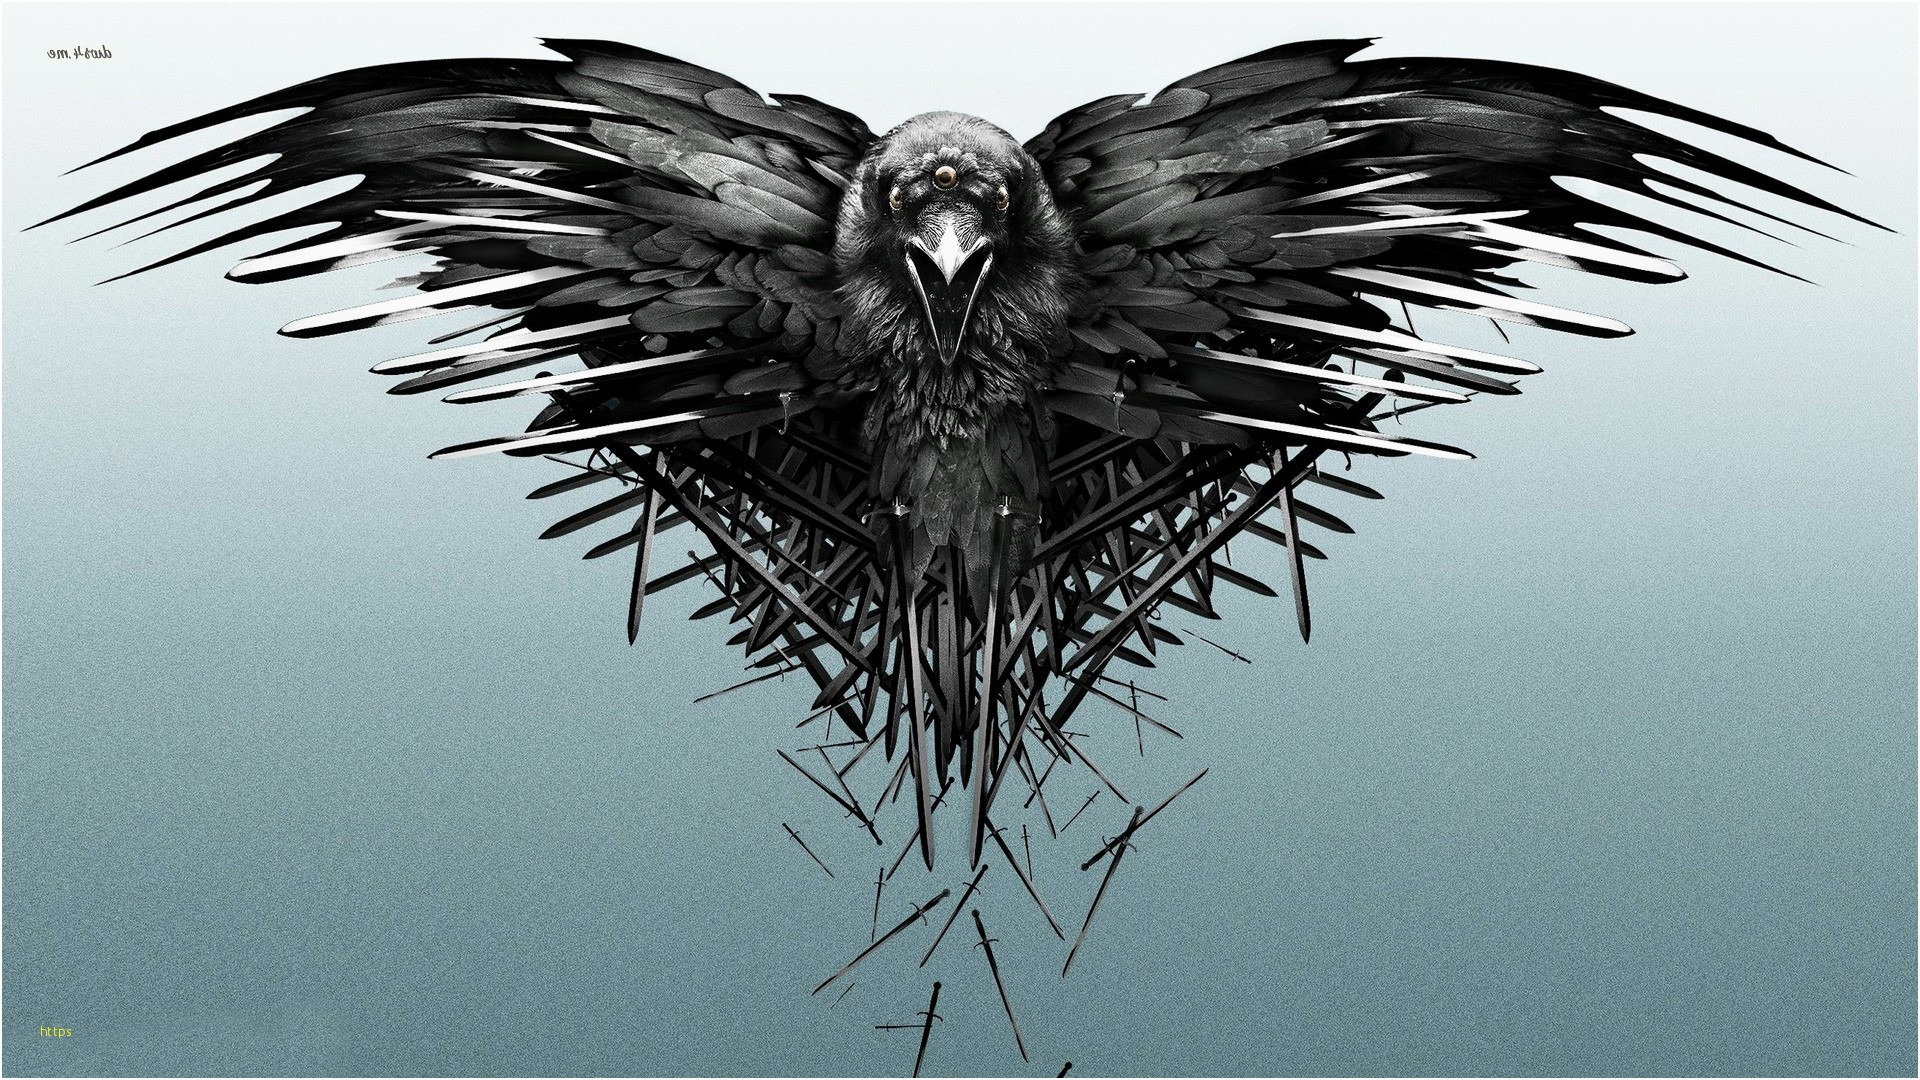 Game Of Thrones Wallpaper Unique Game Thrones Crow Ultra